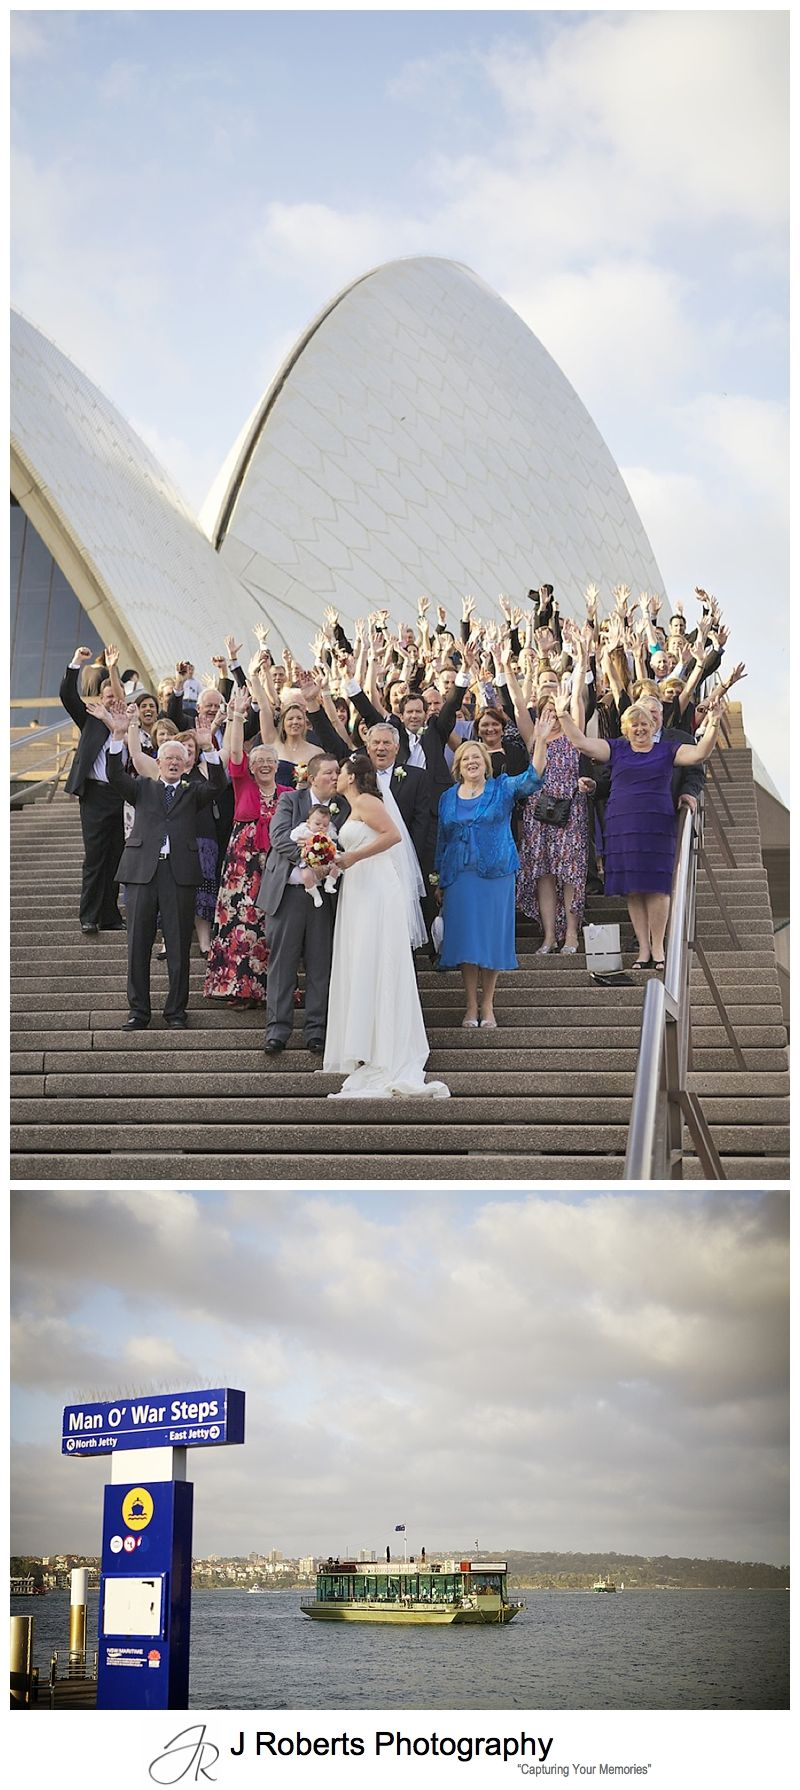 Whole wedding party on the steps of the sydney opera house - sydney wedding photography